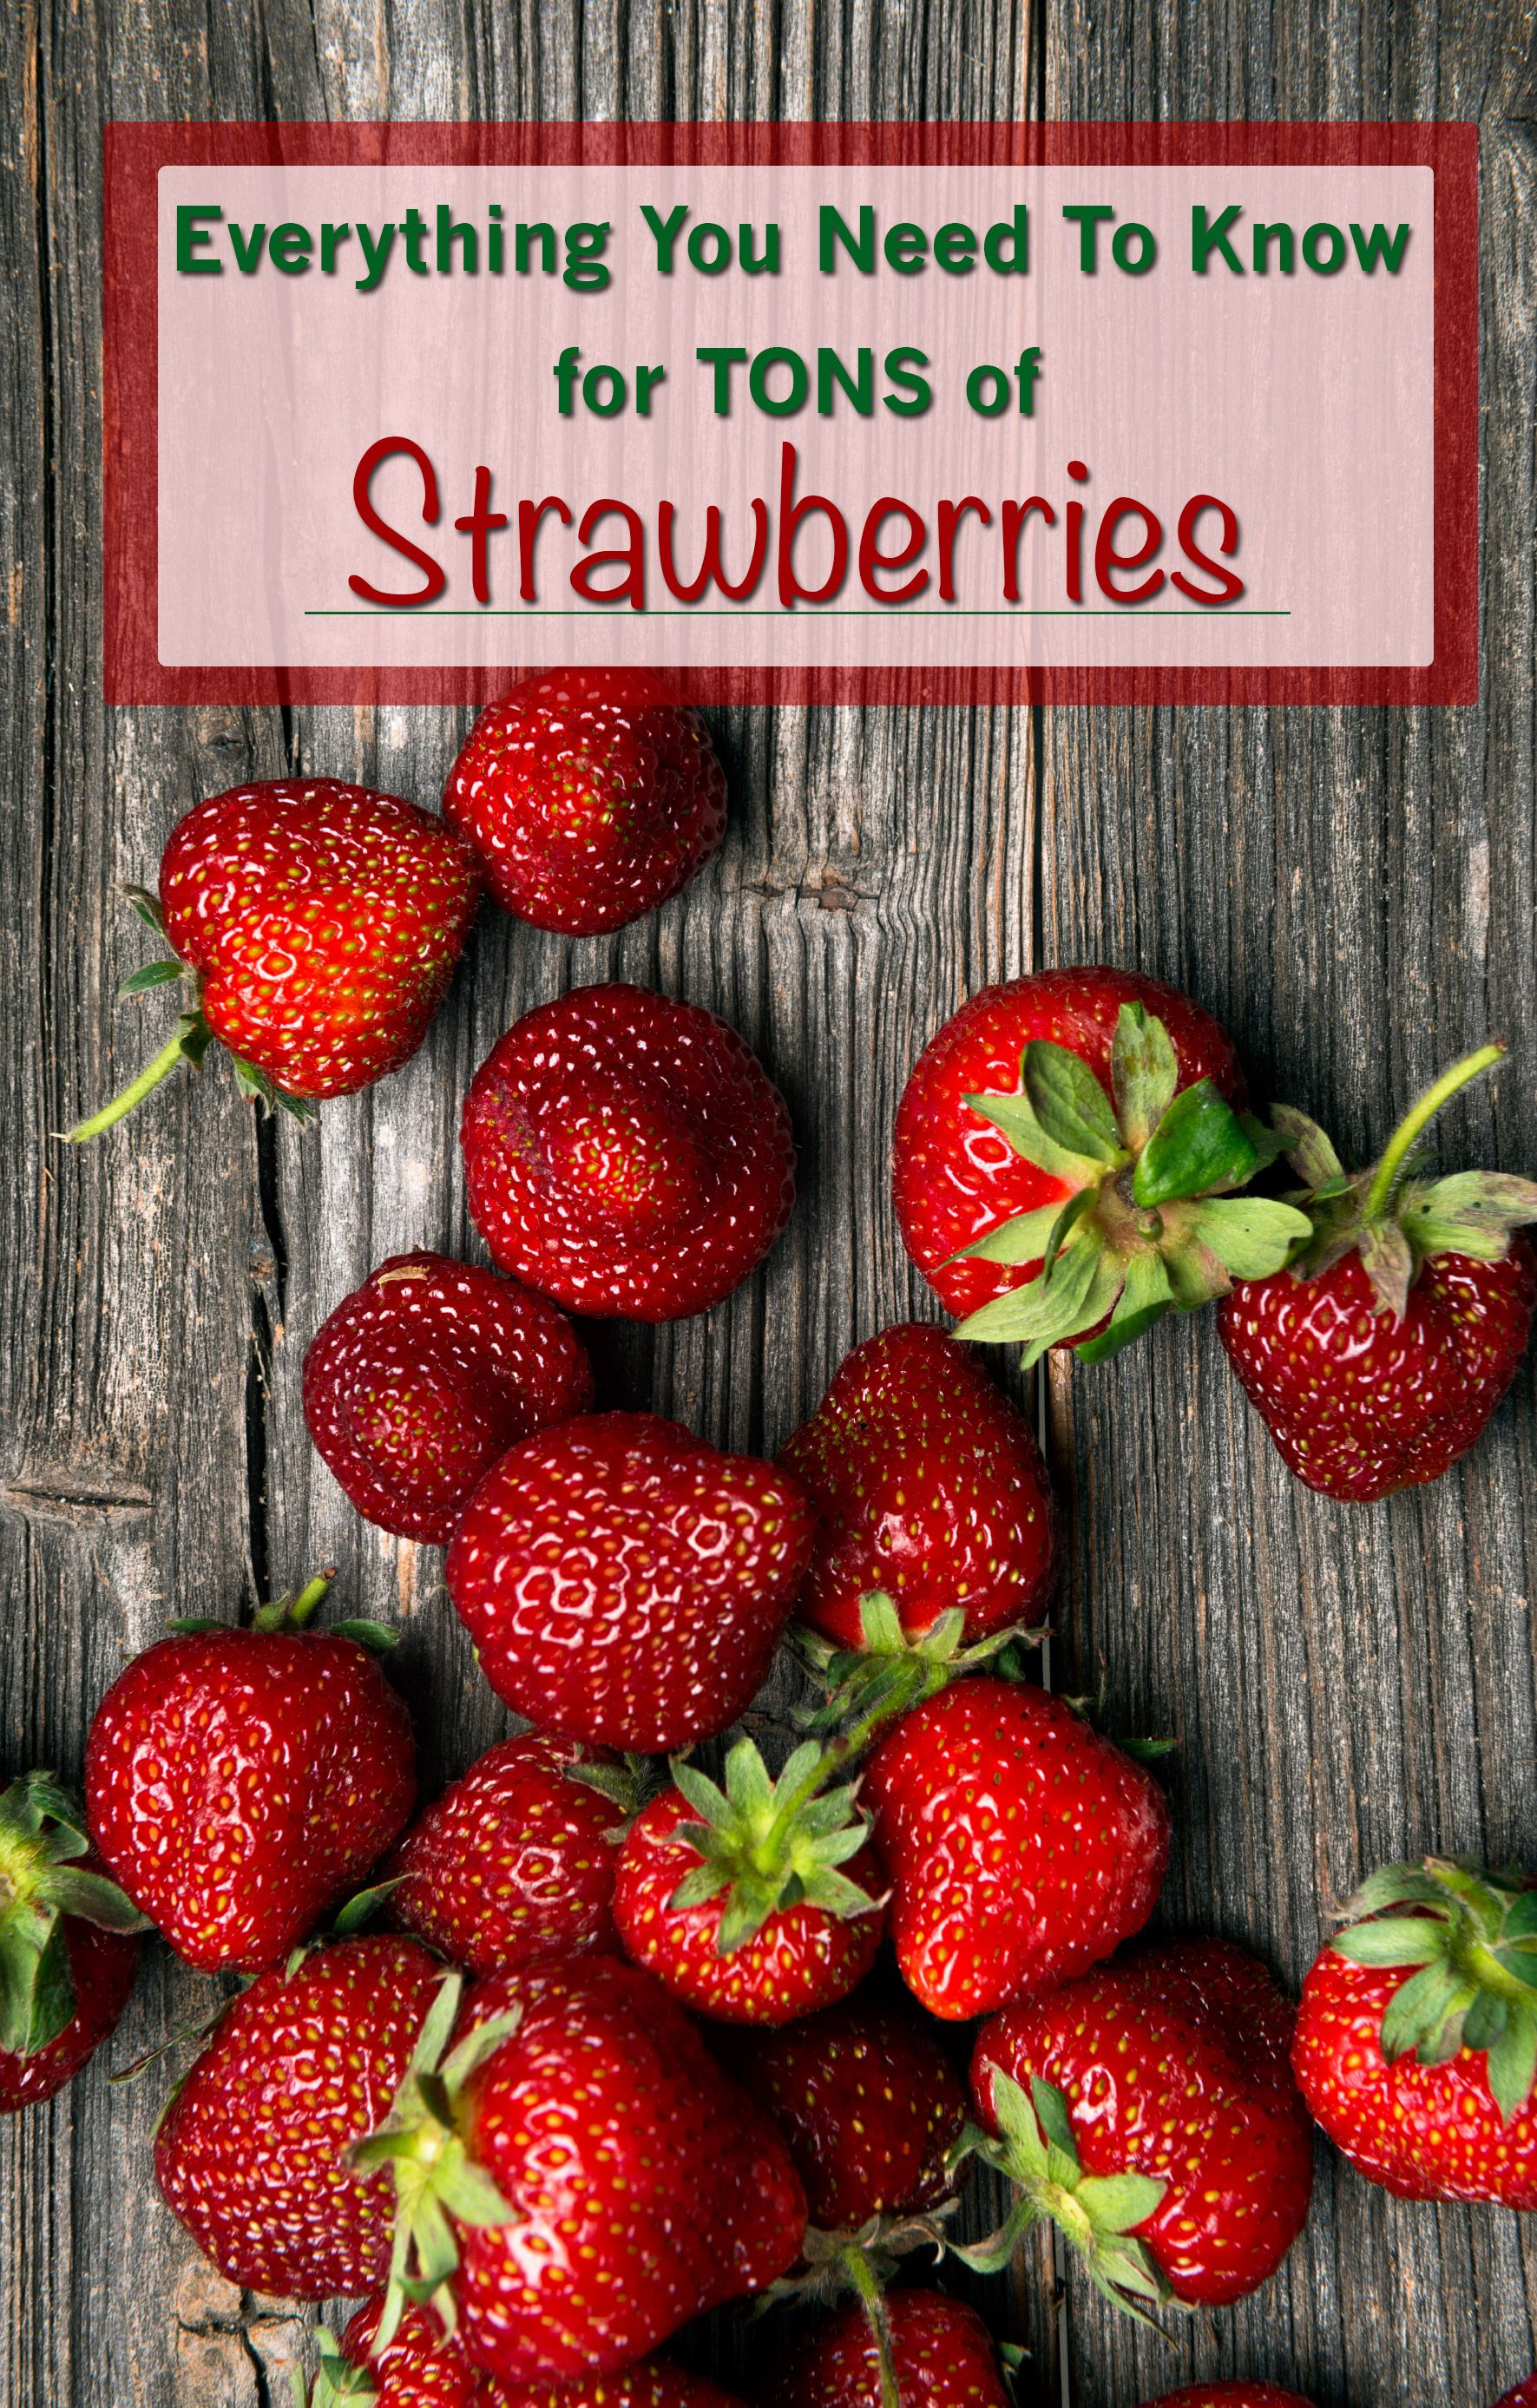 Strawberries Your NeedtoKnow Guide Strawberry plants